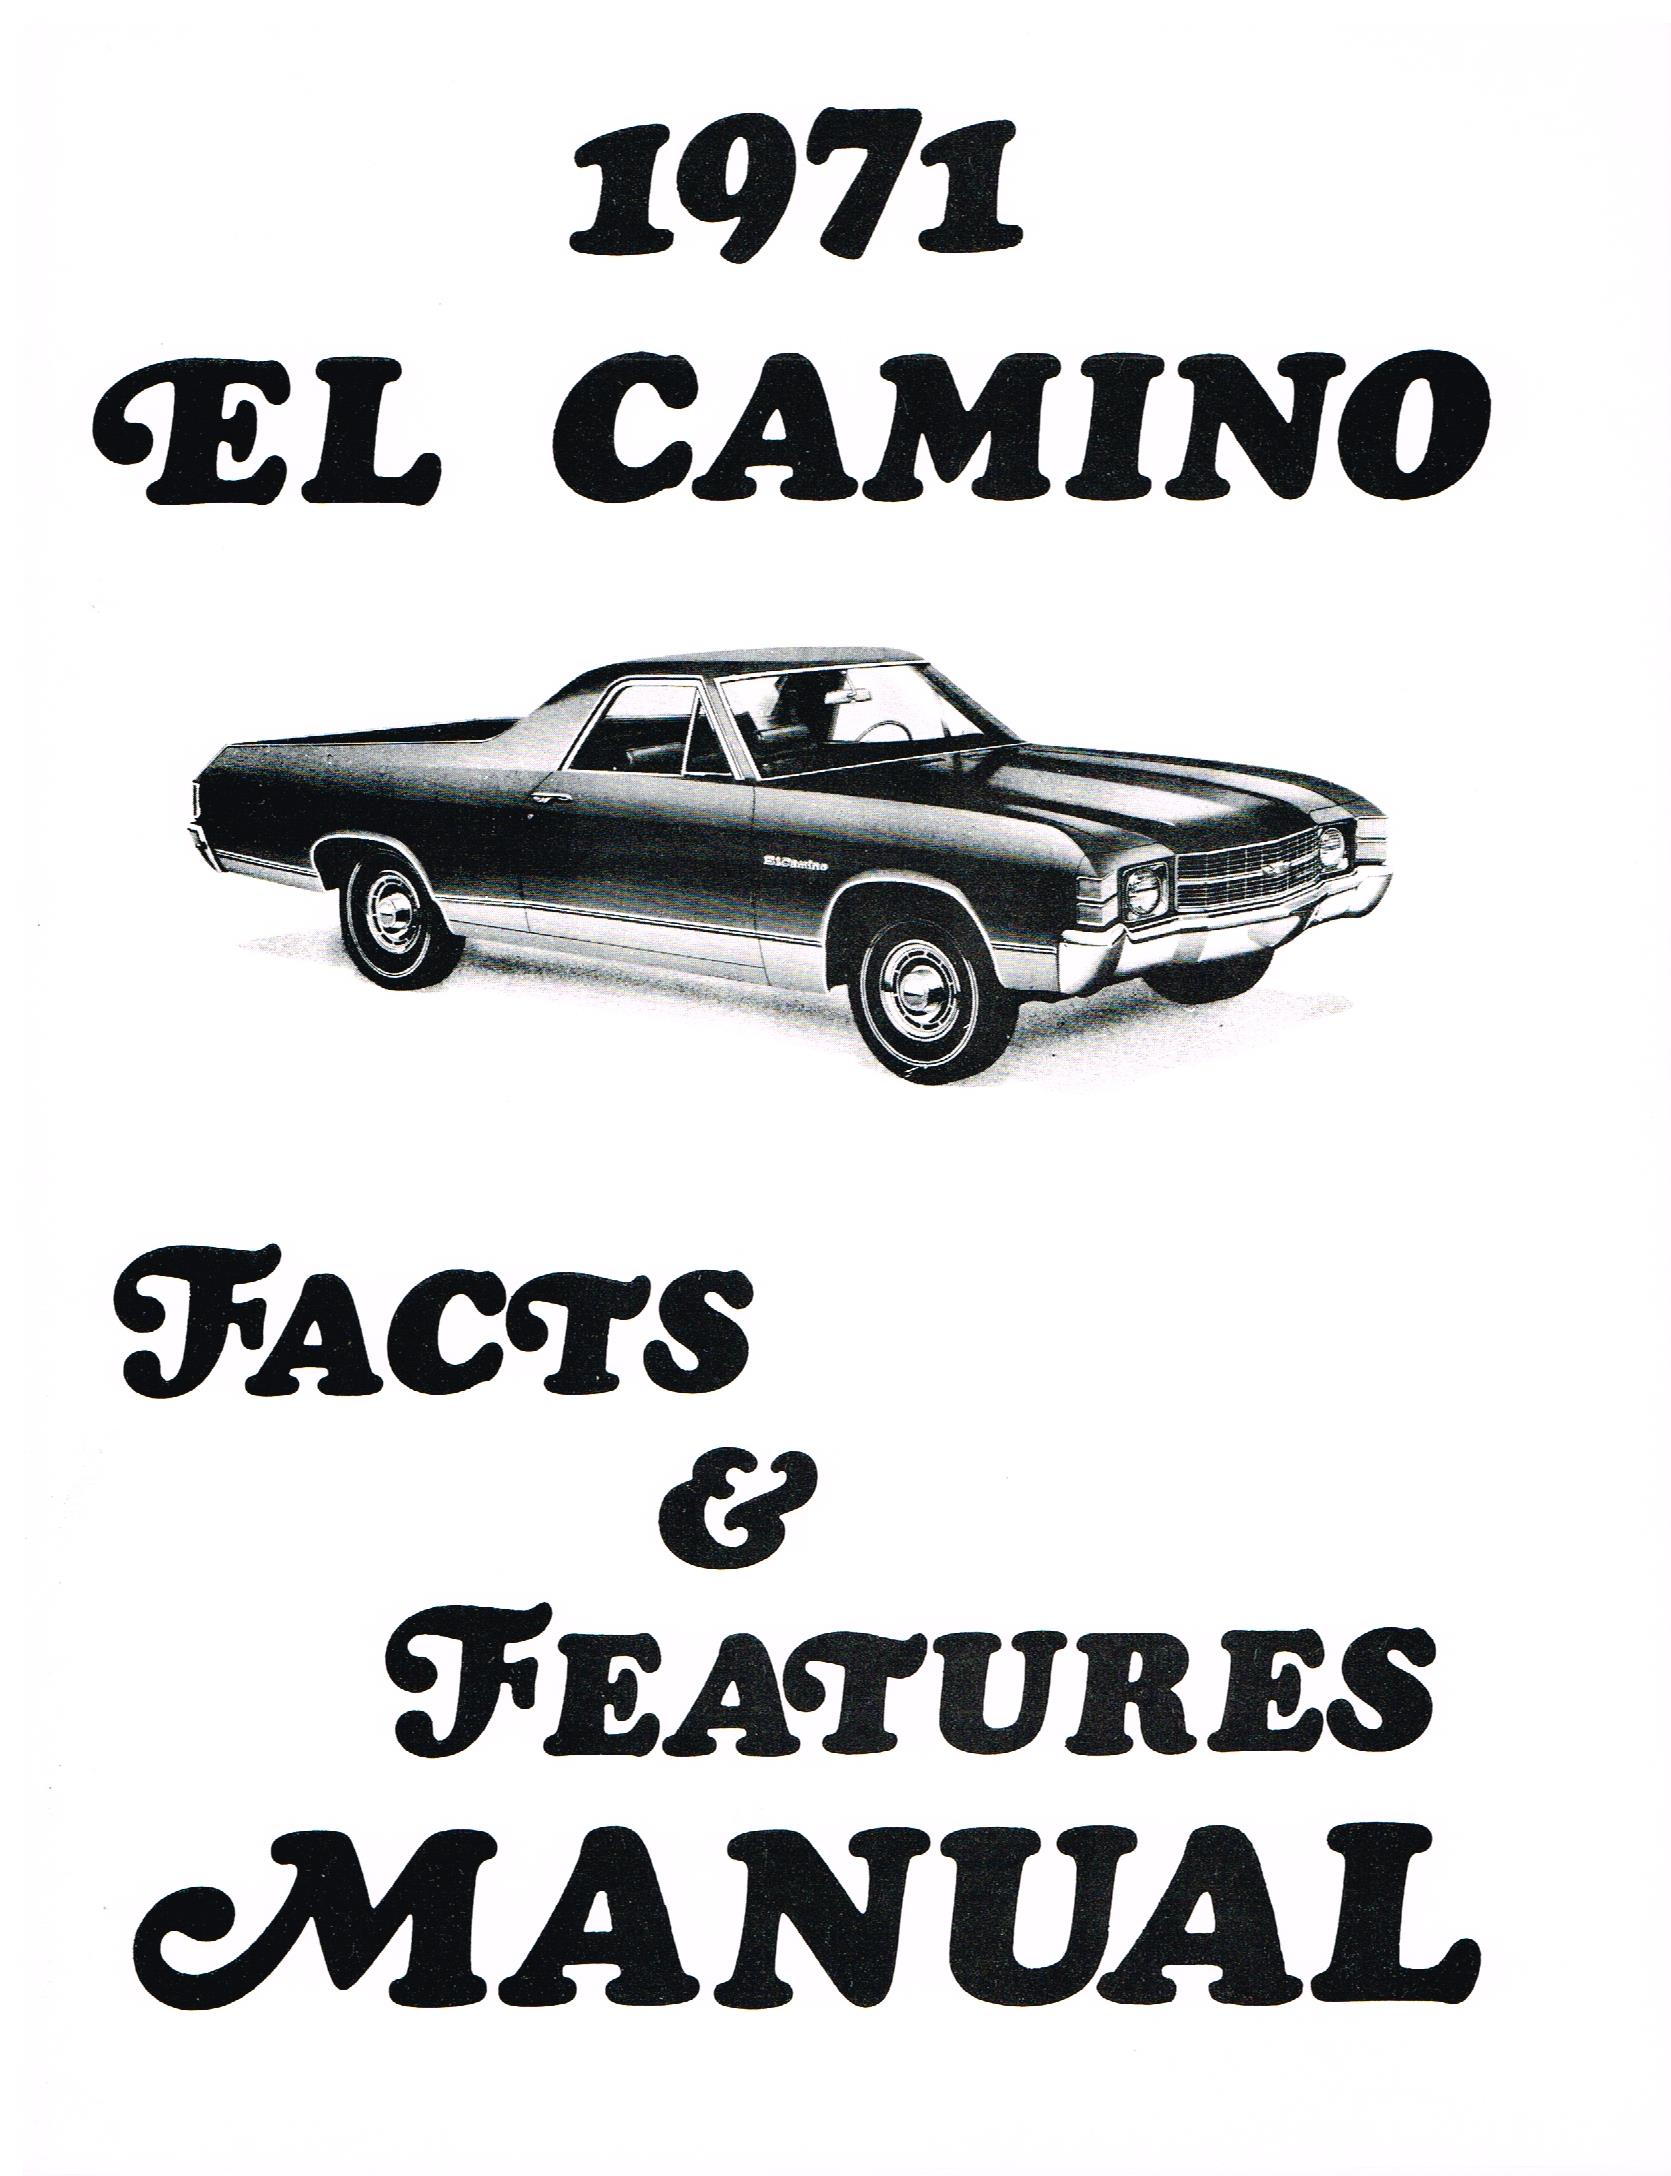 El Camino Facts And Specifications Manual